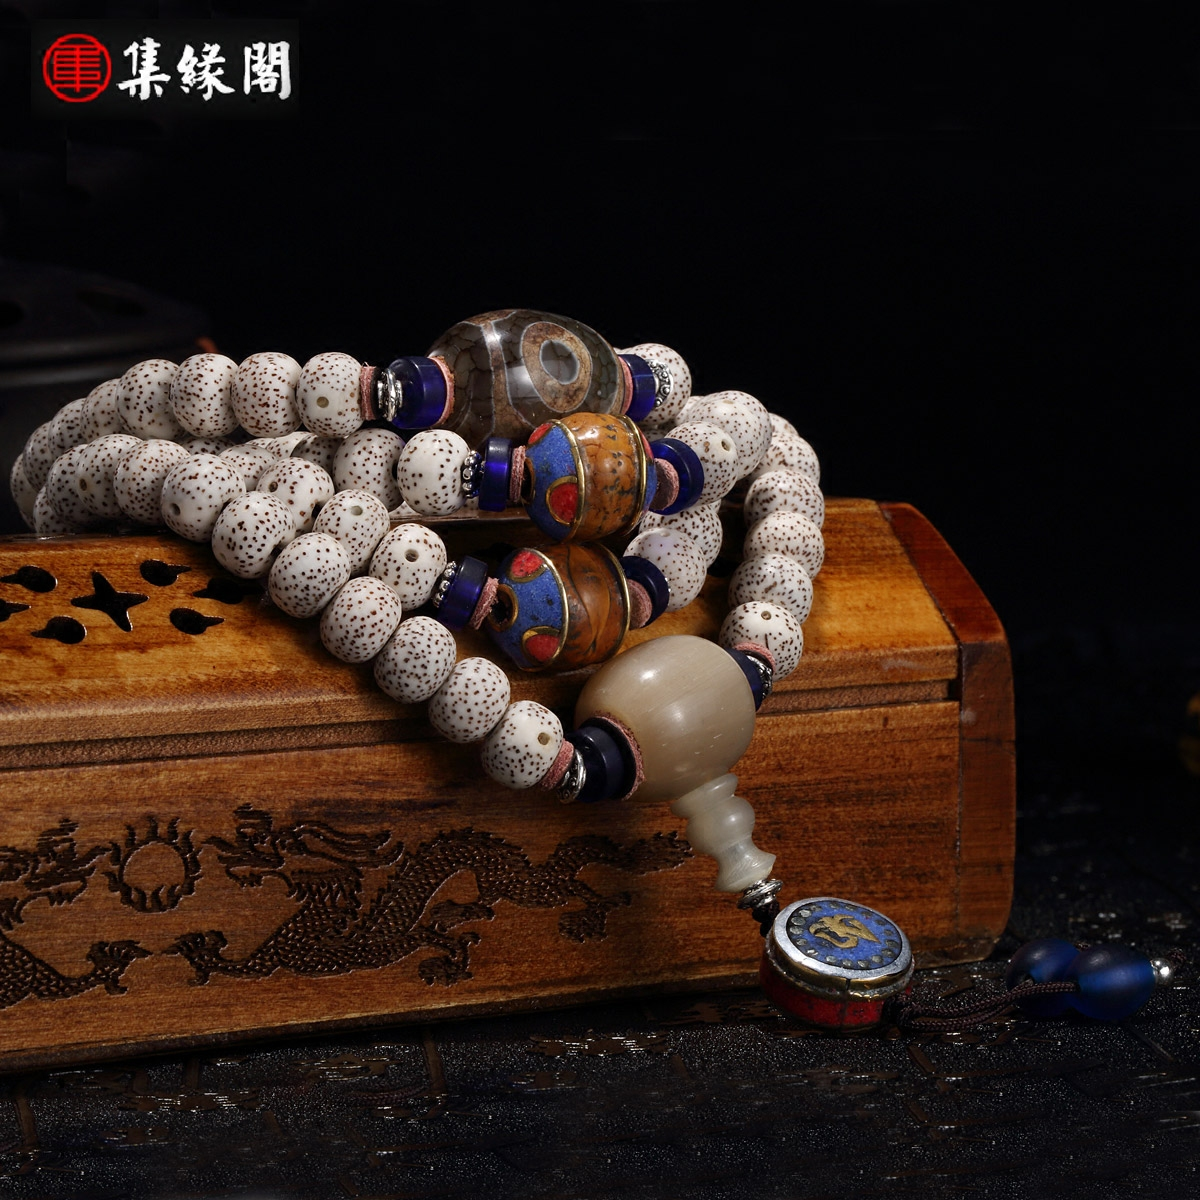 Set edge court xingyue bodhi 108é¢multiturn bracelets tibetan prayer beads bracelet necklace ethnic style sweater chain accessories china